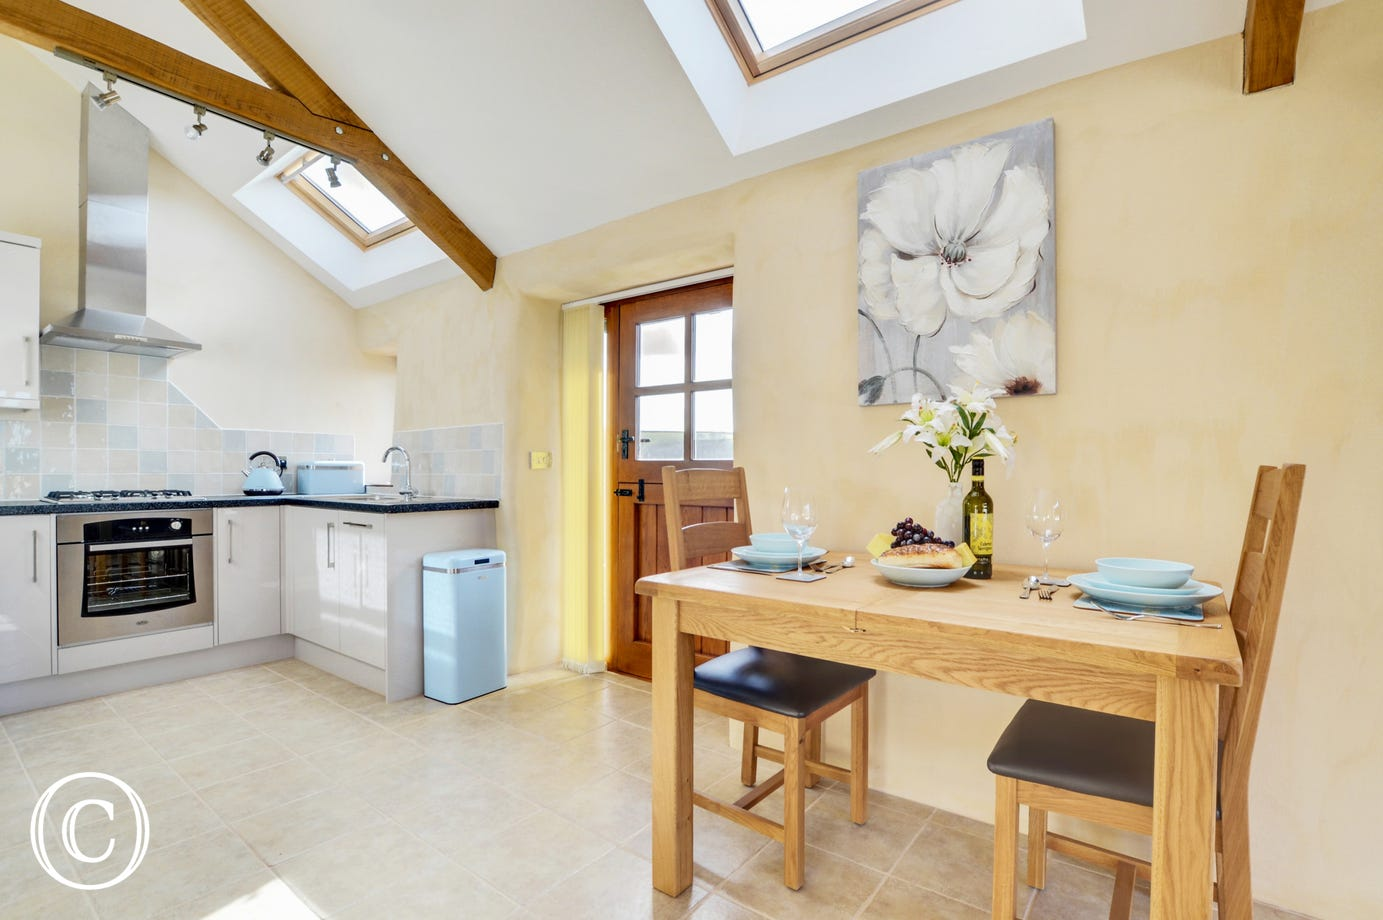 The high apex ceiling and velux windows offer a bright and spacious open plan living space